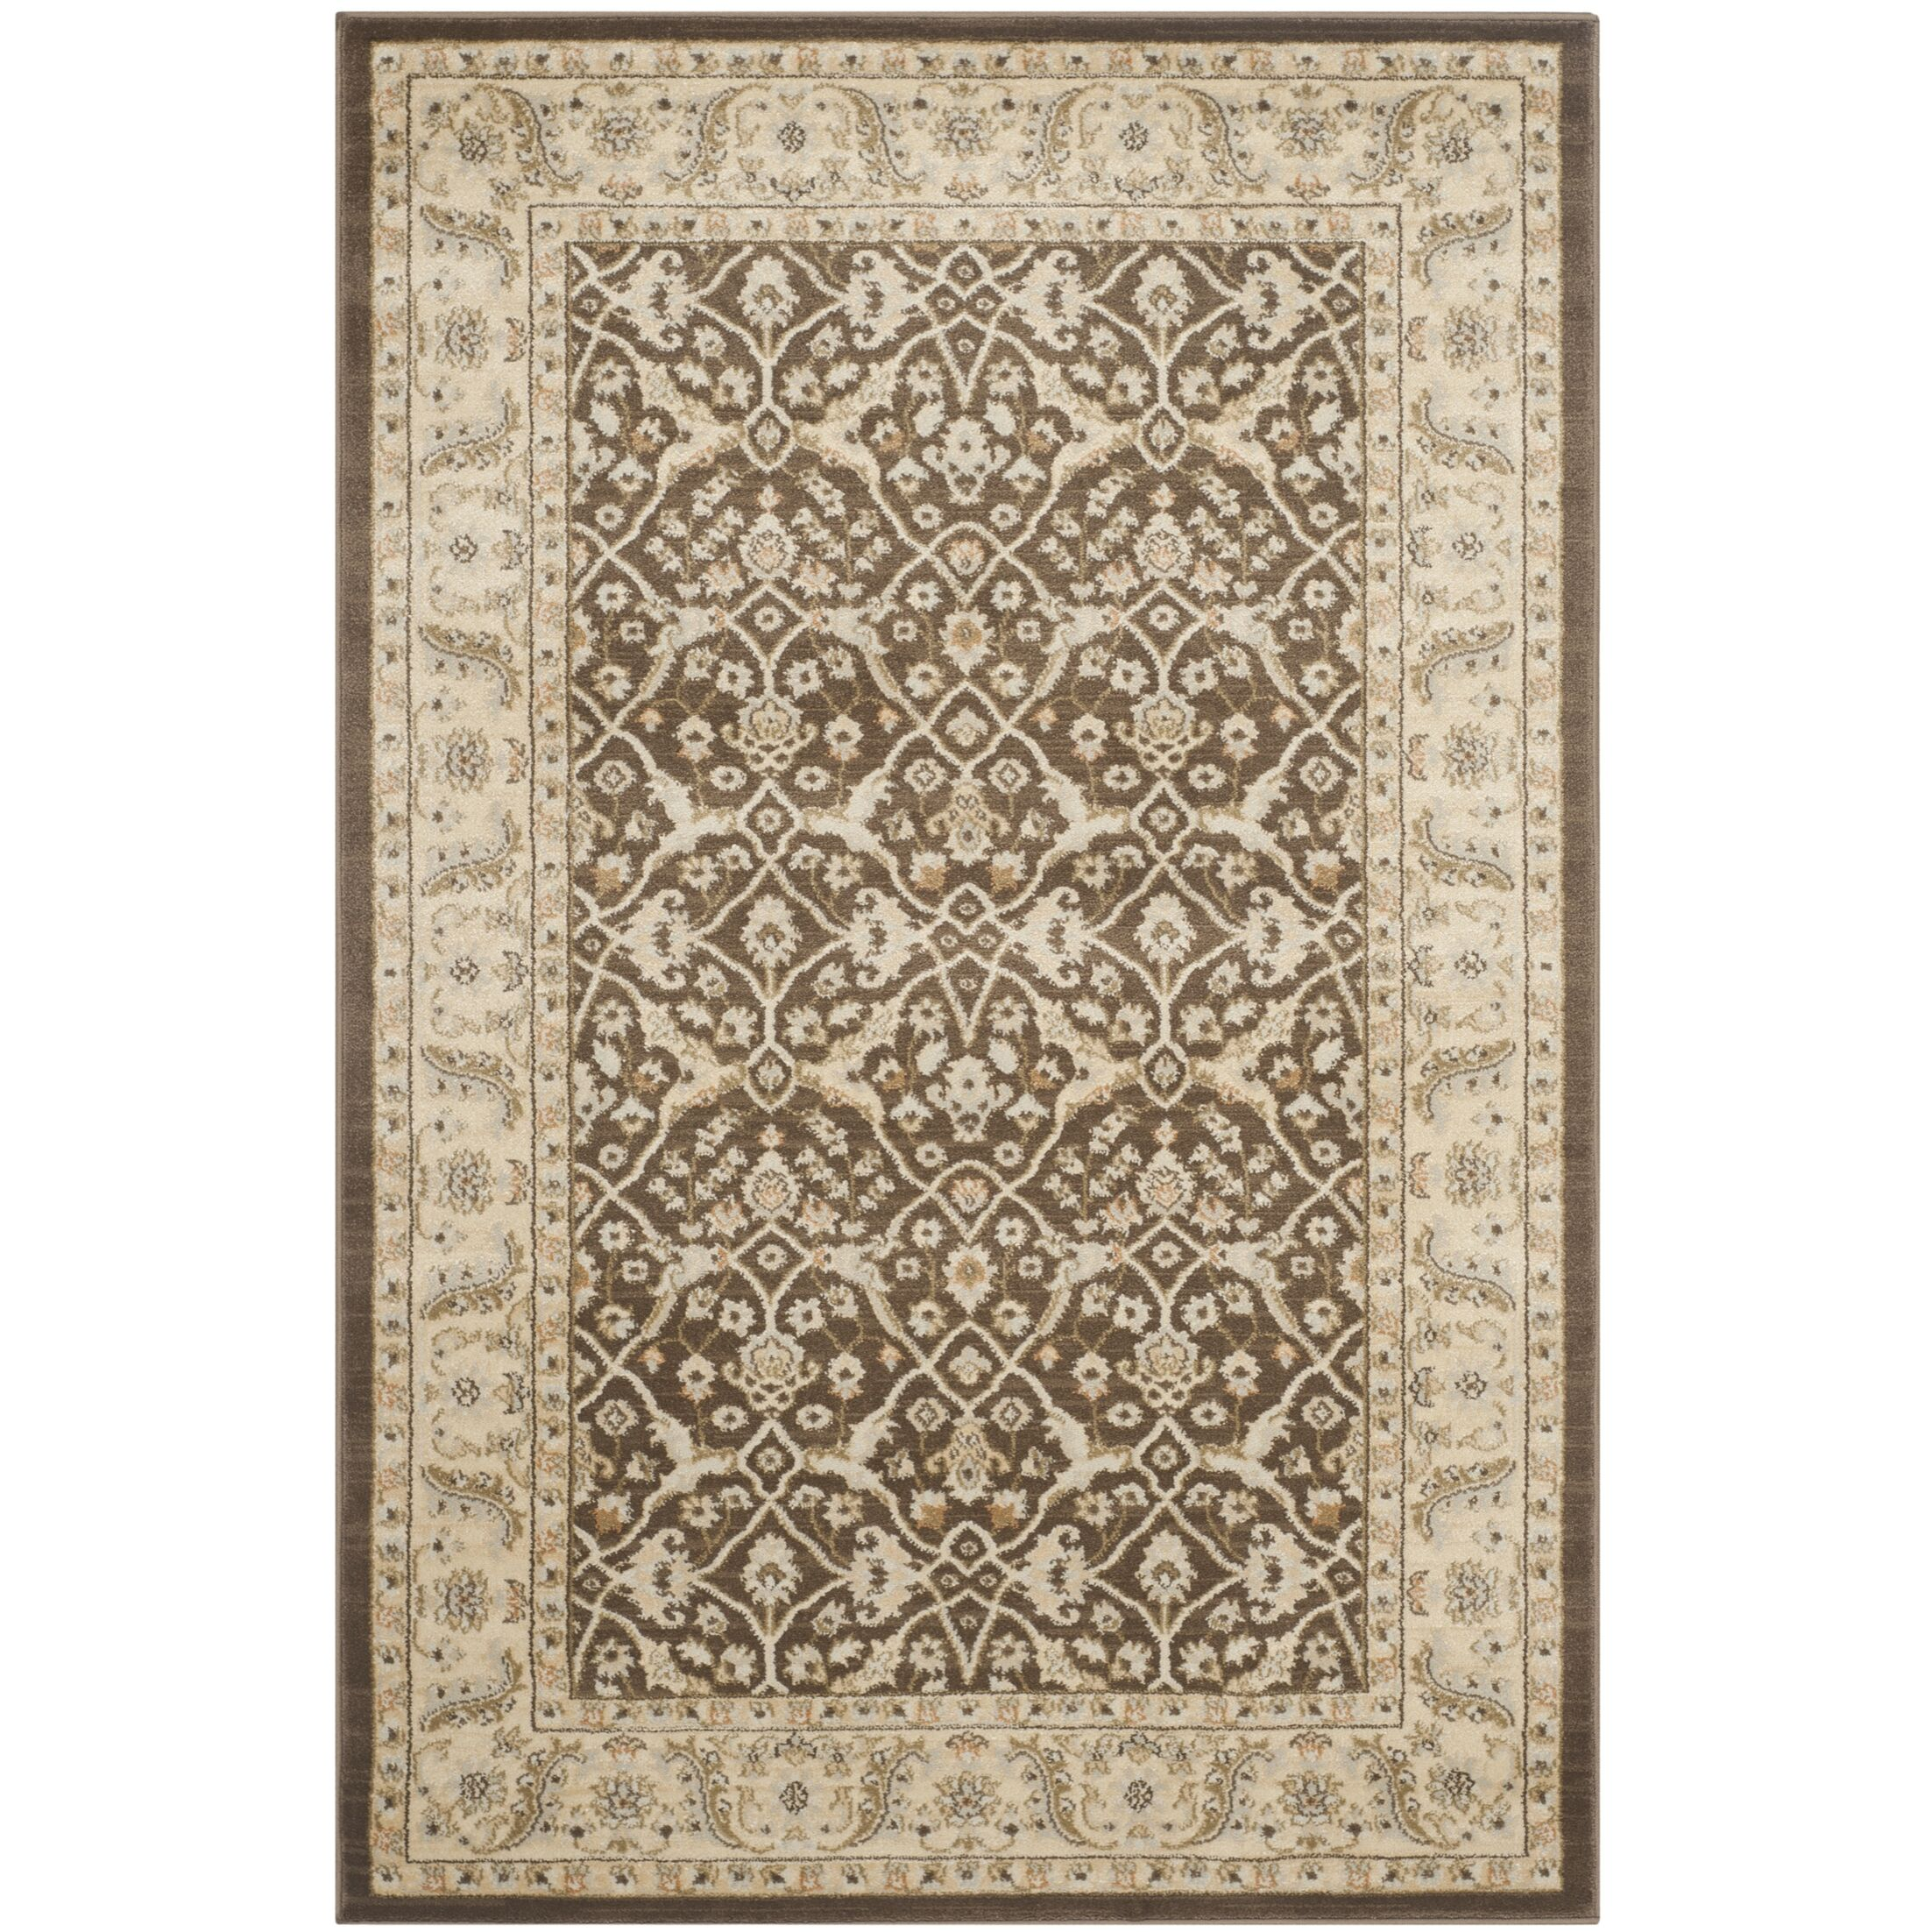 Lavelle Brown / Ivory Area Rug Rug Size: Rectangle 4' x 6'